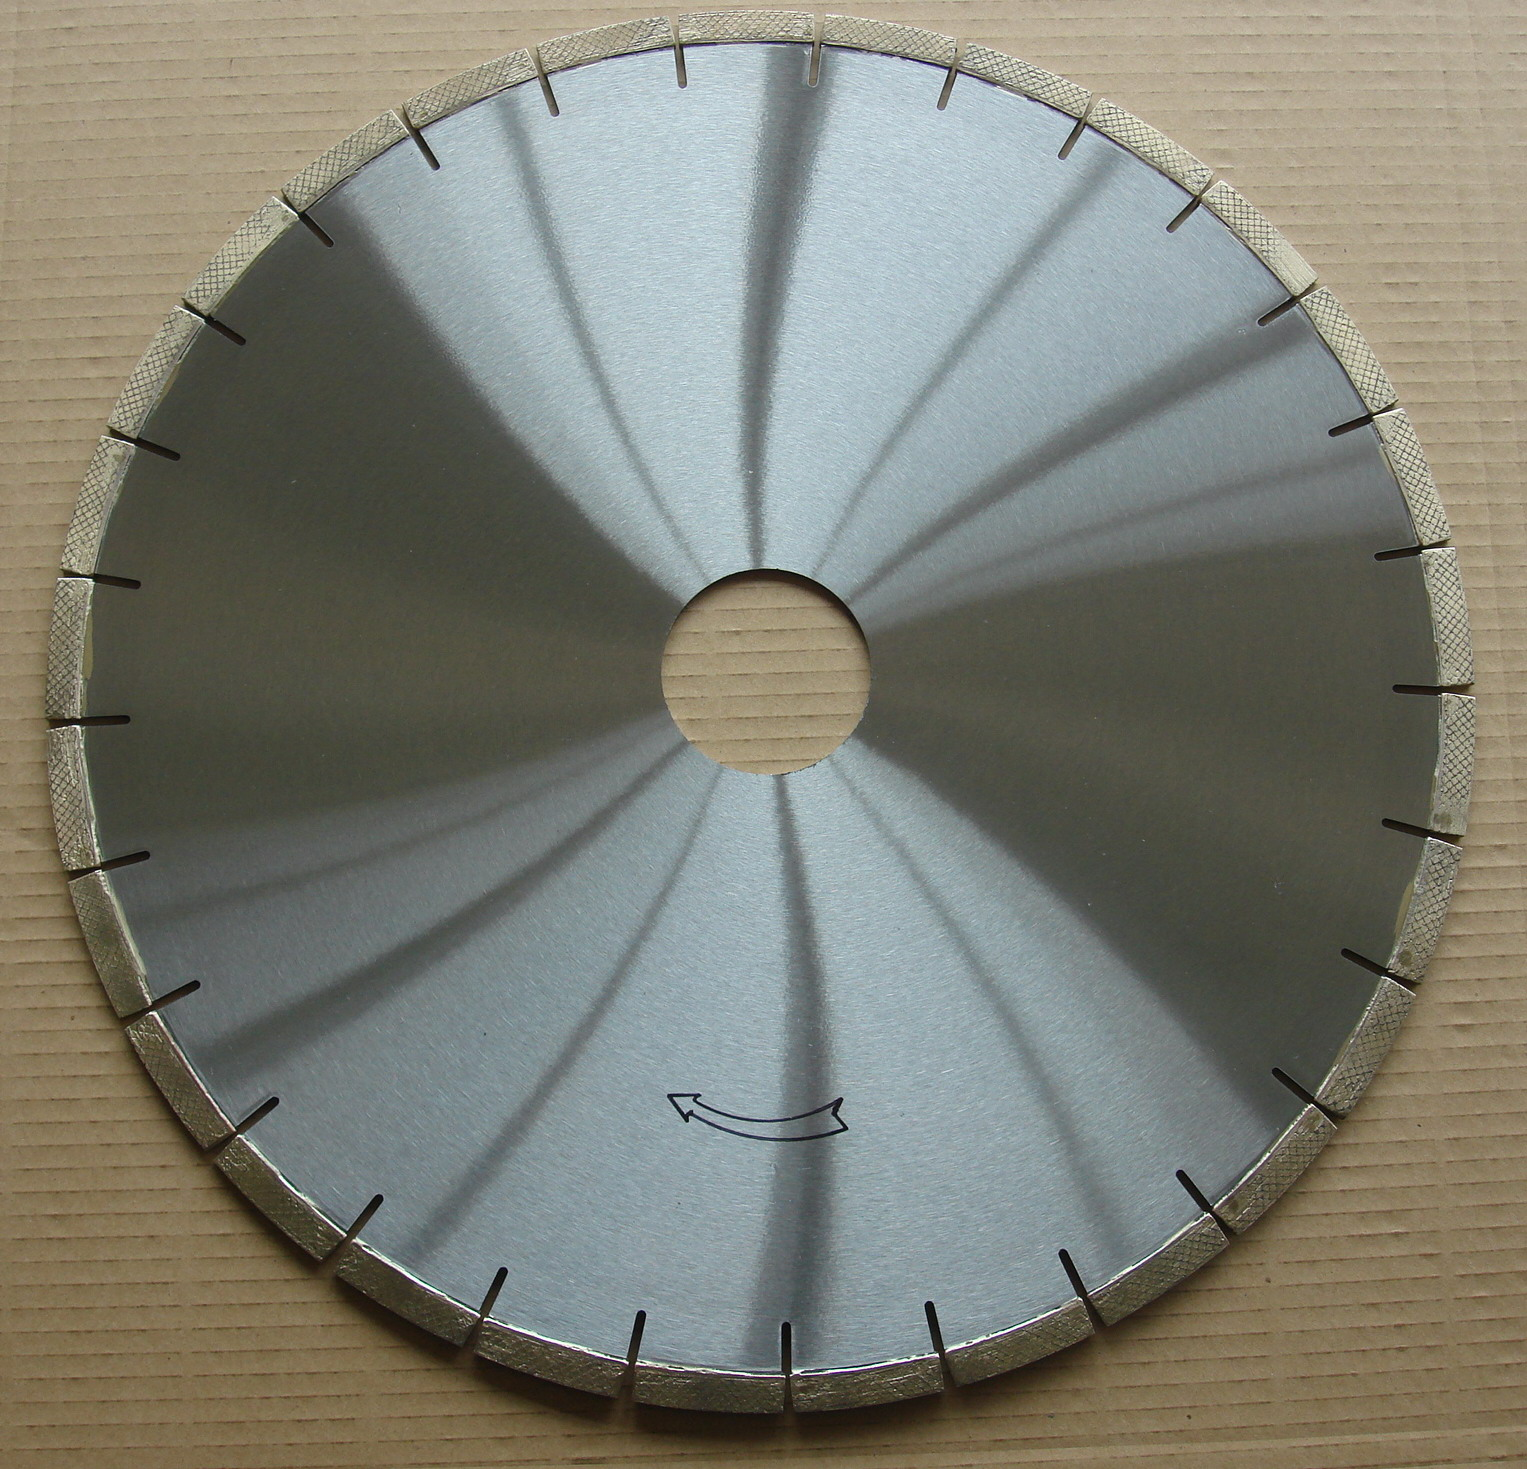 Arrayed Diamond saw Blades